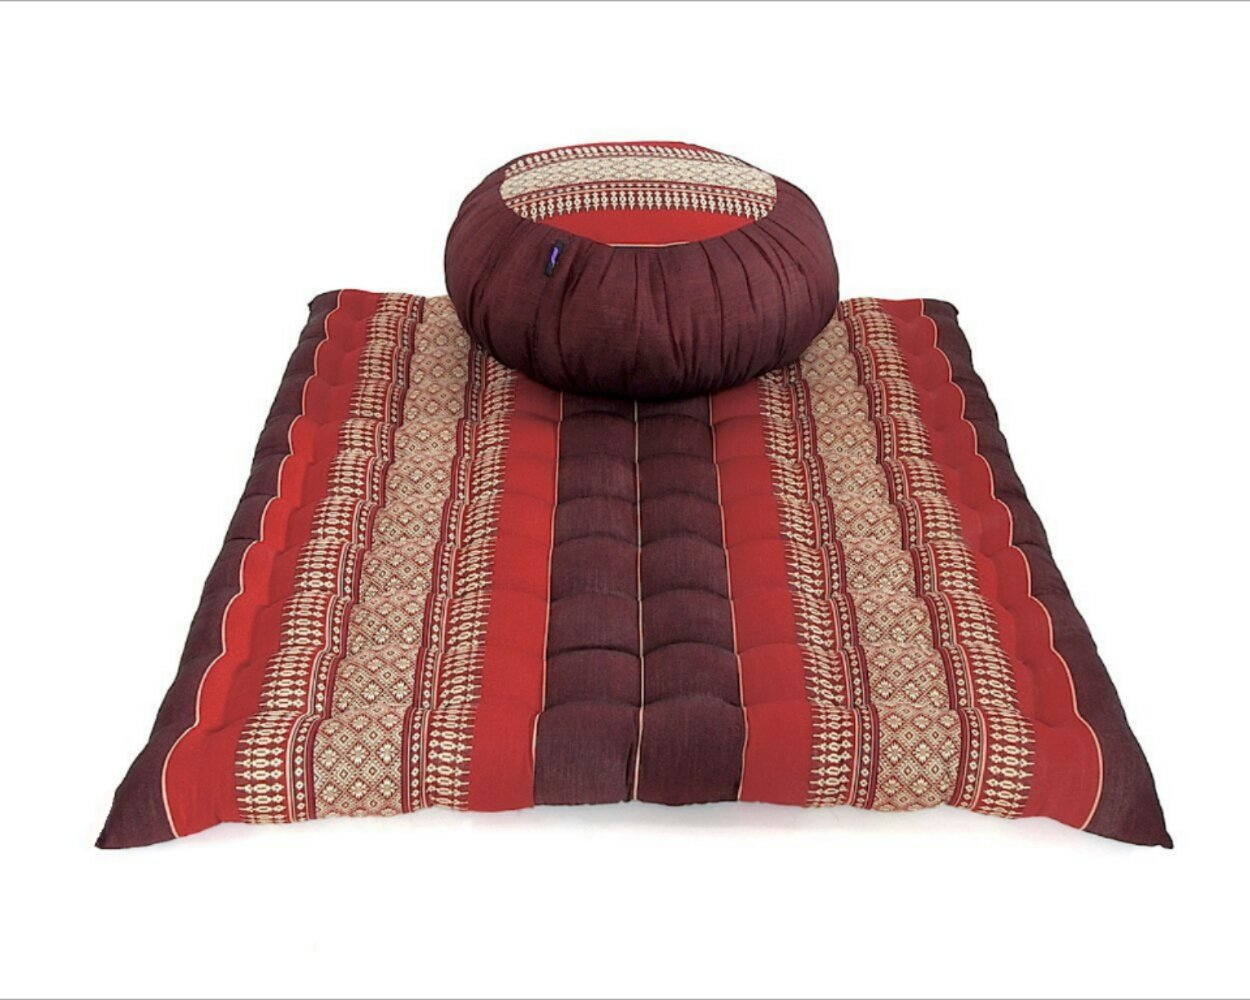 Design by UnseenThailand Meditation Set: Zafu Cushion, Zabuton Mat, Kapok Fabric, 30x28x10 inches. (Dark Red - Red) by UnseenThailand Warehouse